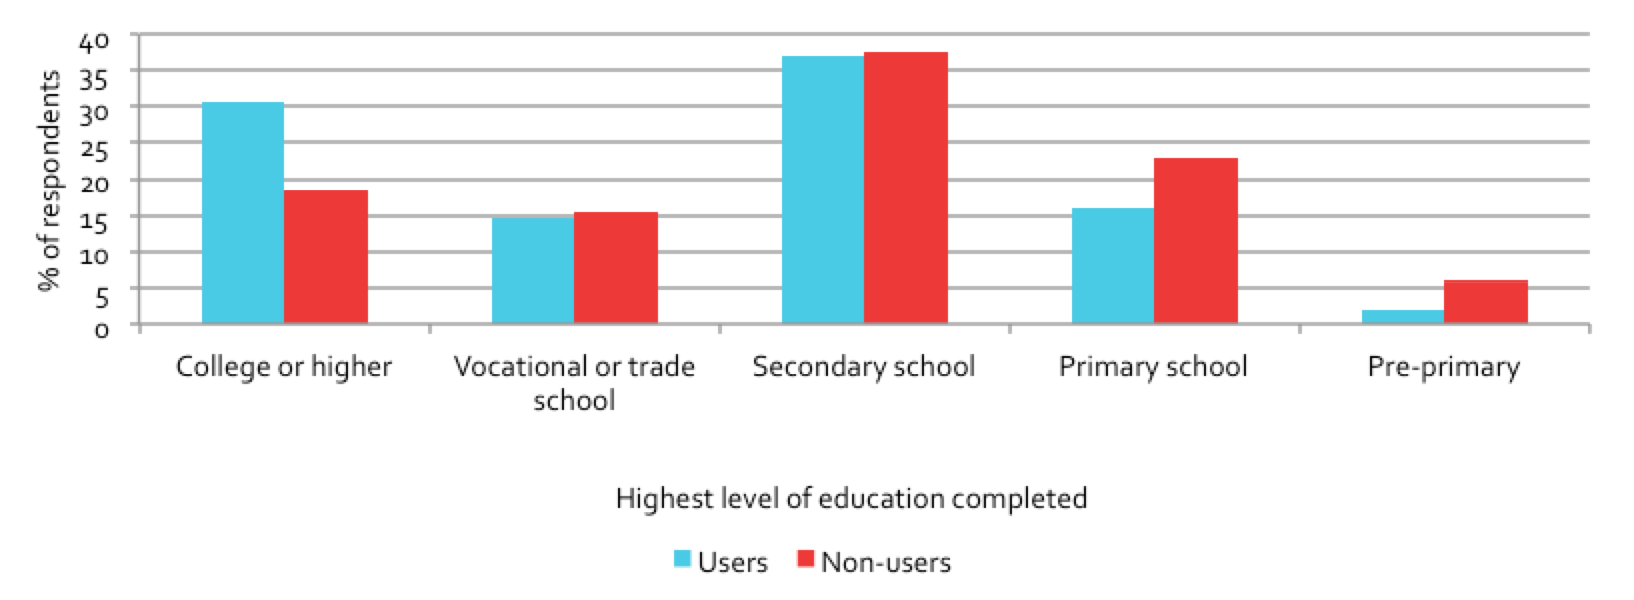 Figure 6.2: Comparison of user and non-user levels of education